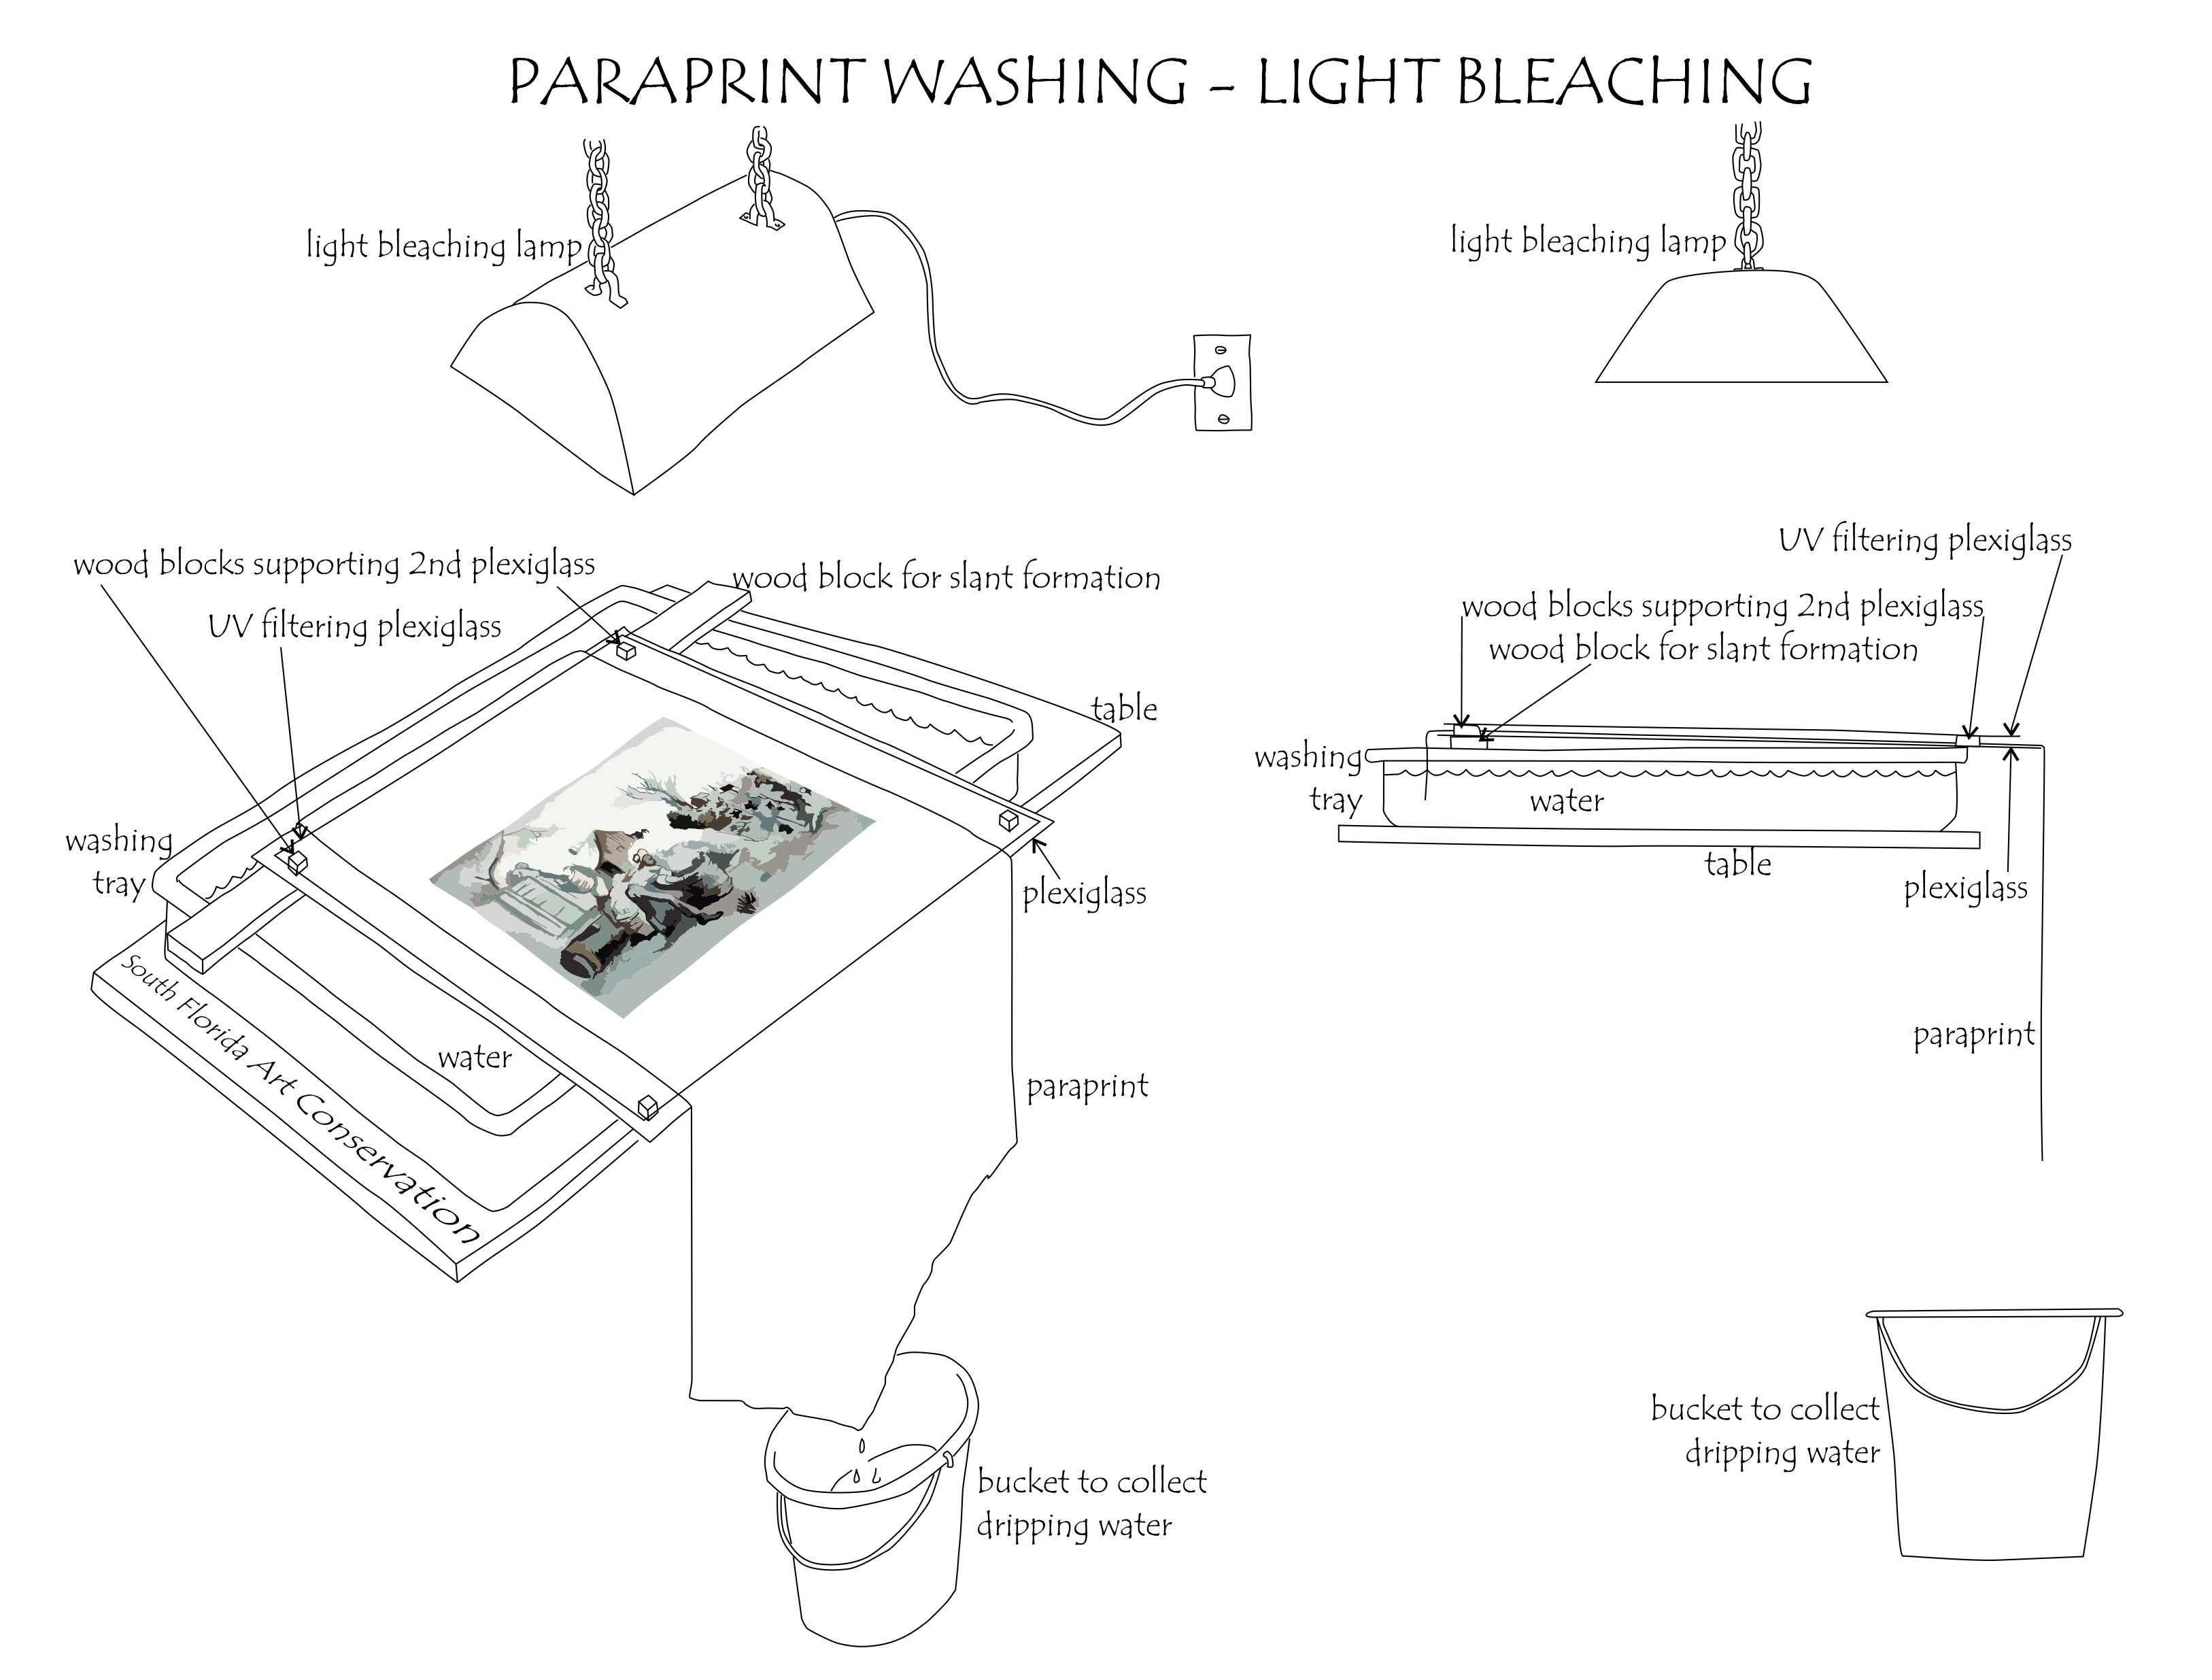 Capillary Washing and Light Bleaching set up